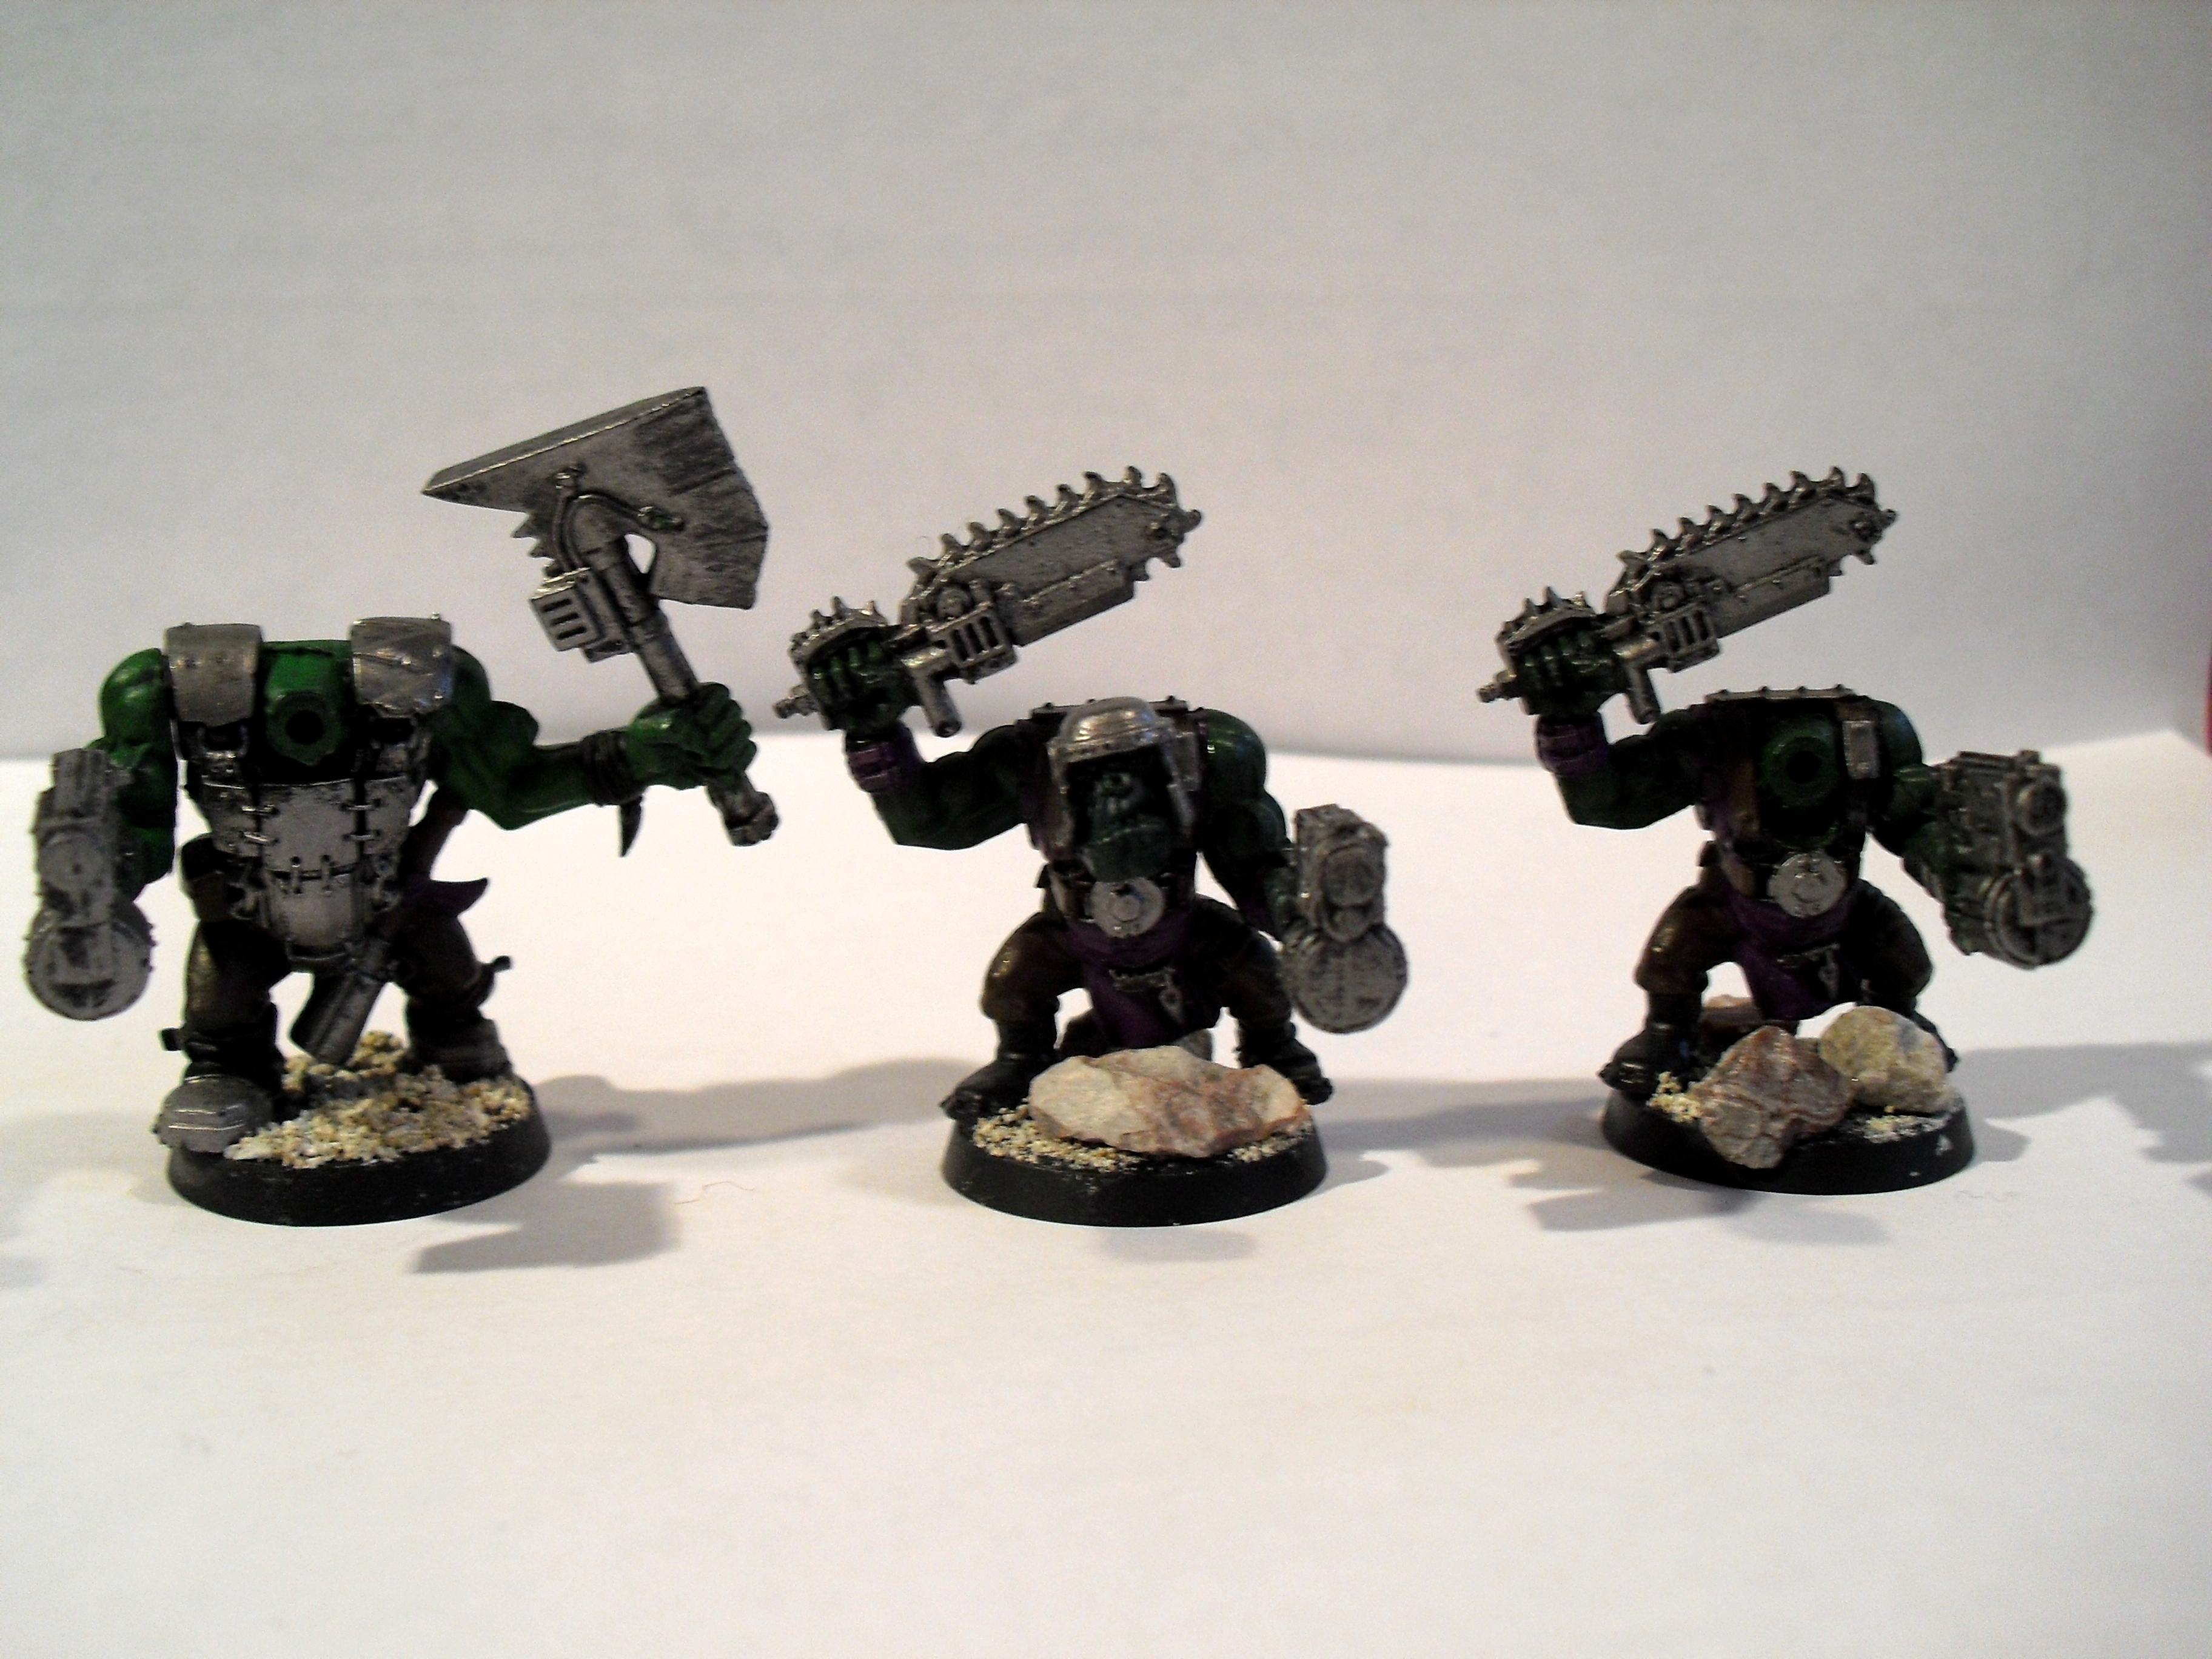 Assault On Black Reach, Orks, Painting, Warhammer 40,000